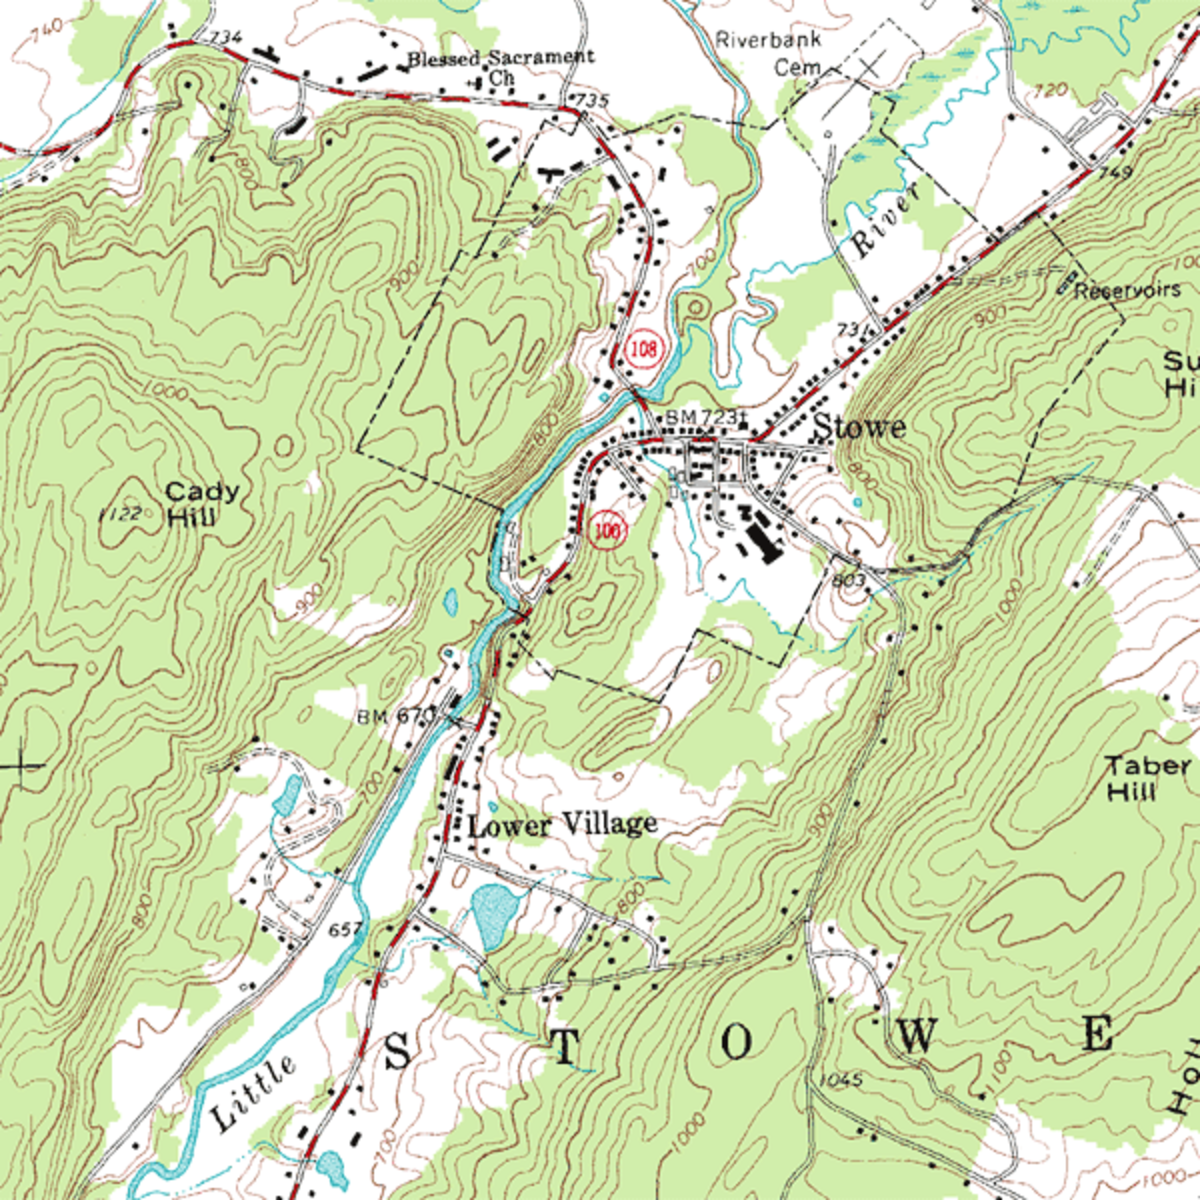 Example of a Topographic Map